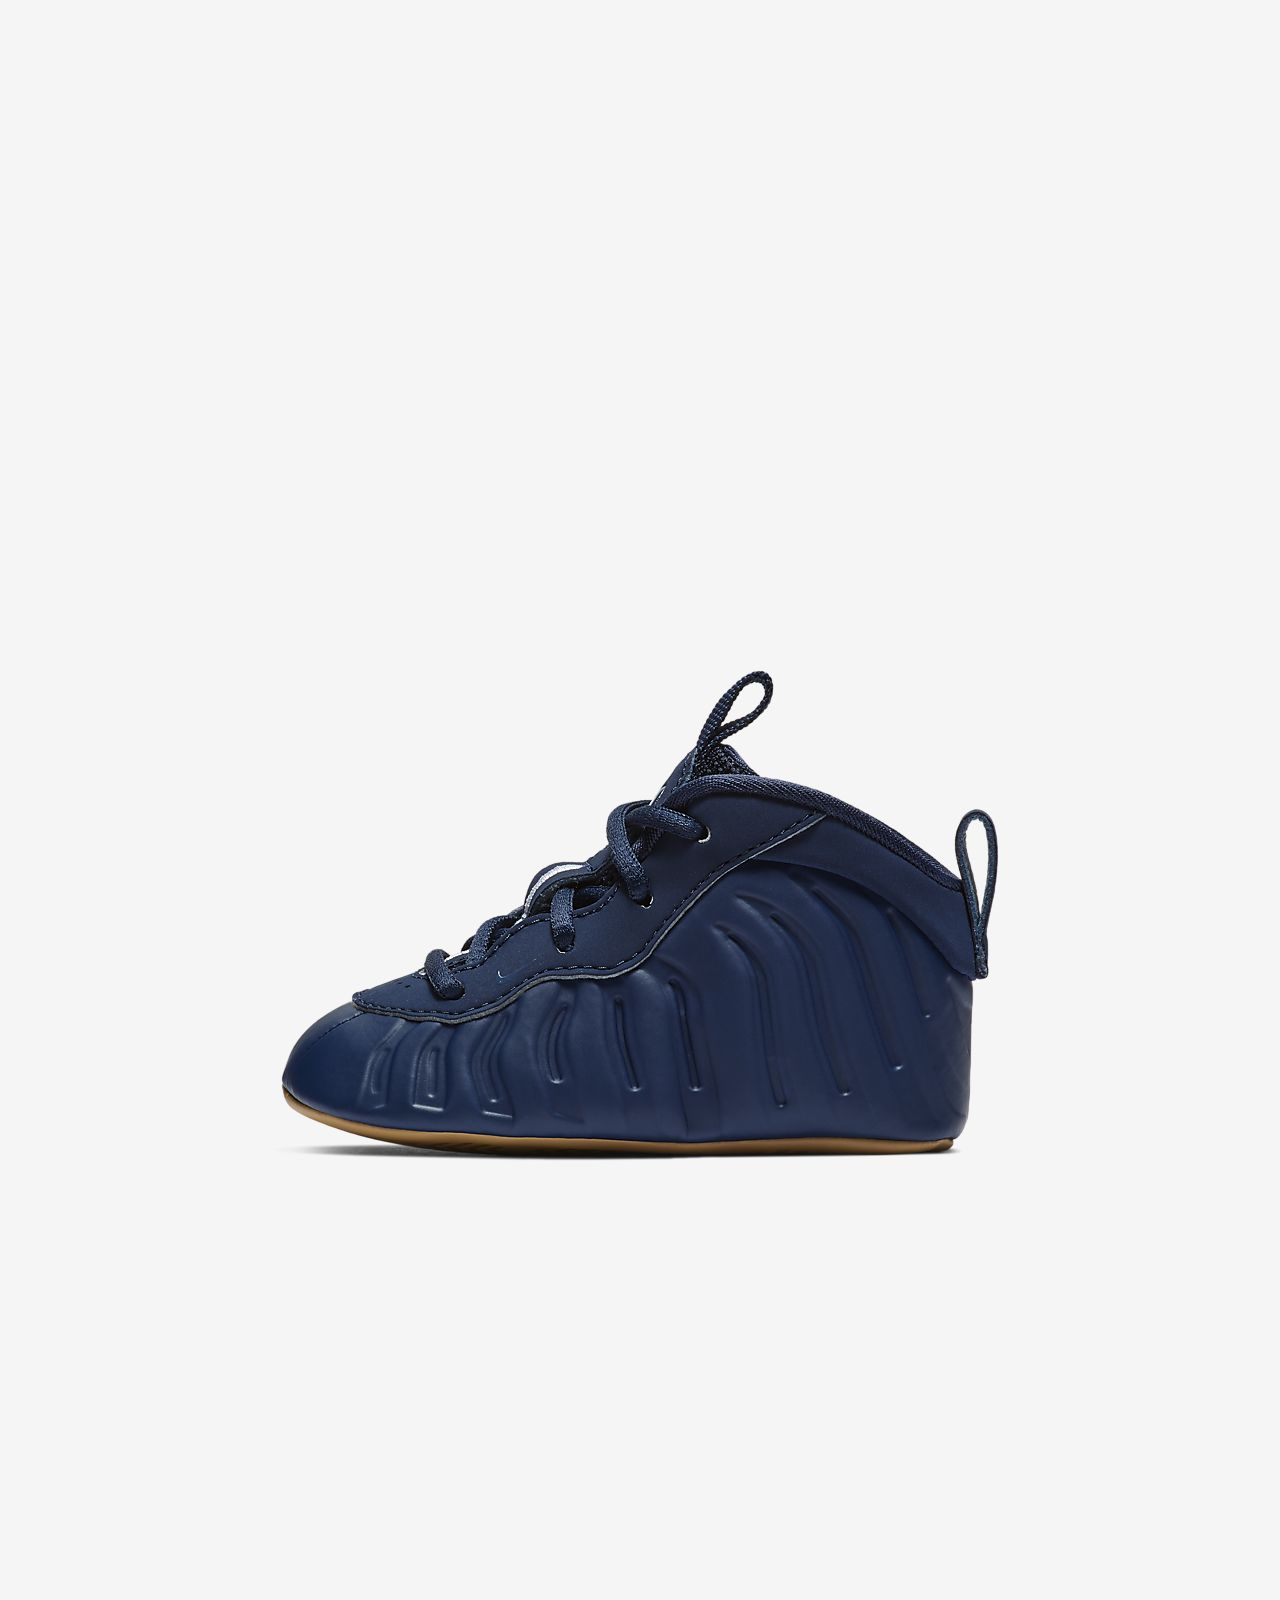 Nike Lil' Posite One Infant Bootie